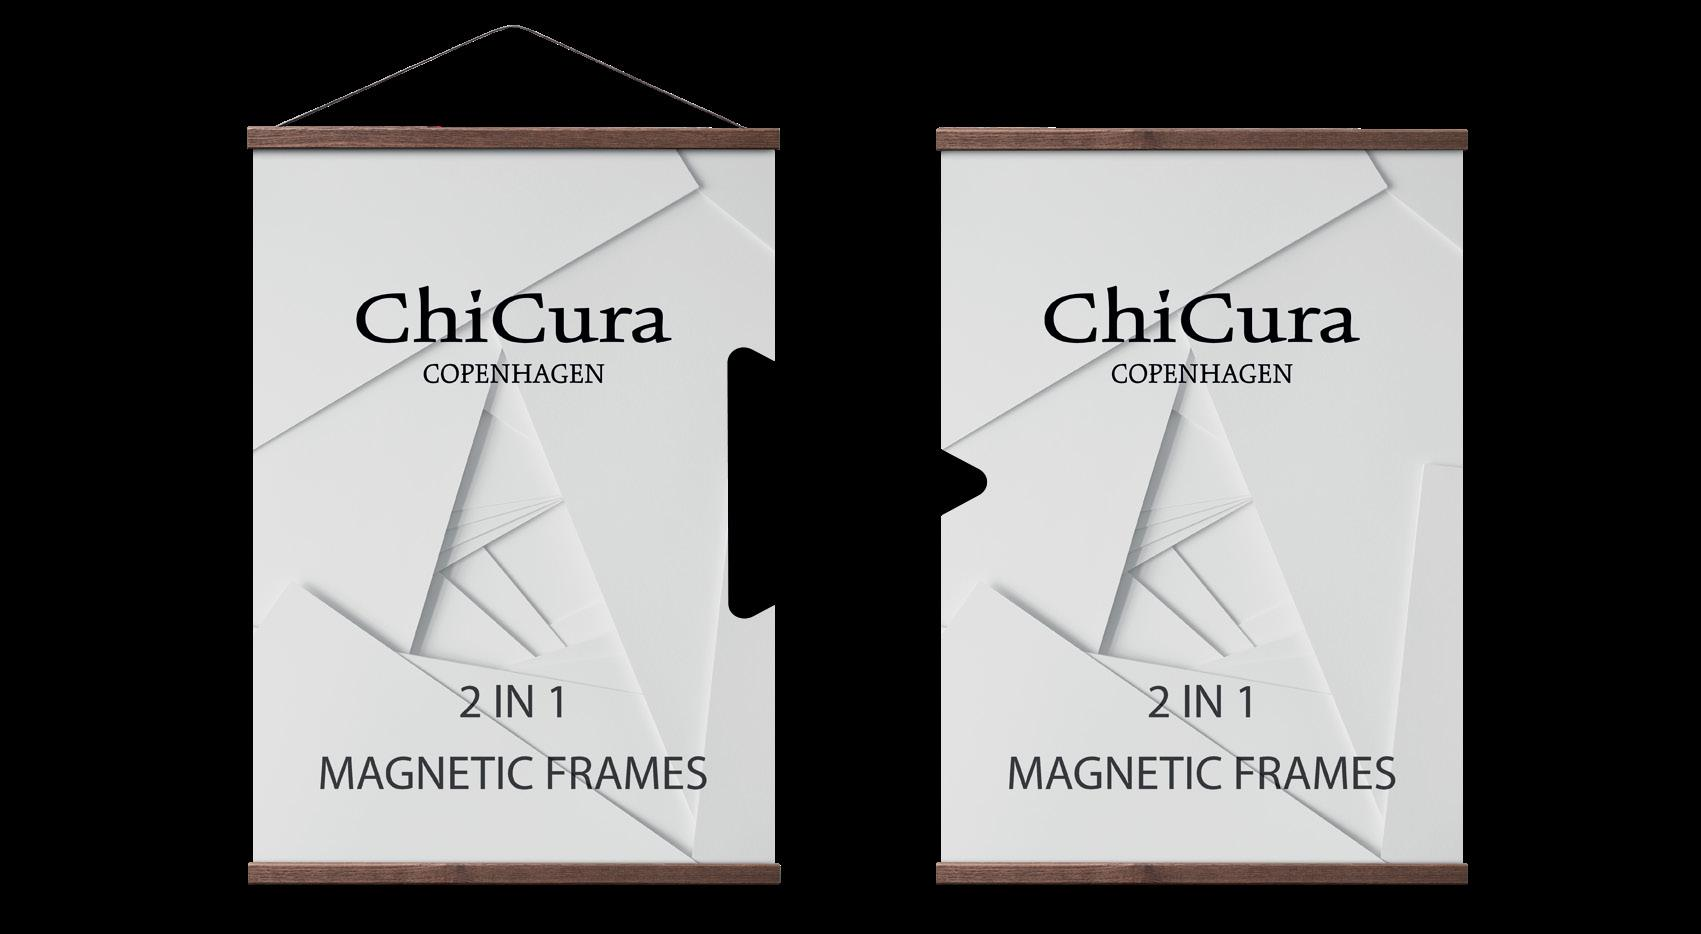 Page 6 of 2 in 1 Magnetic Frames